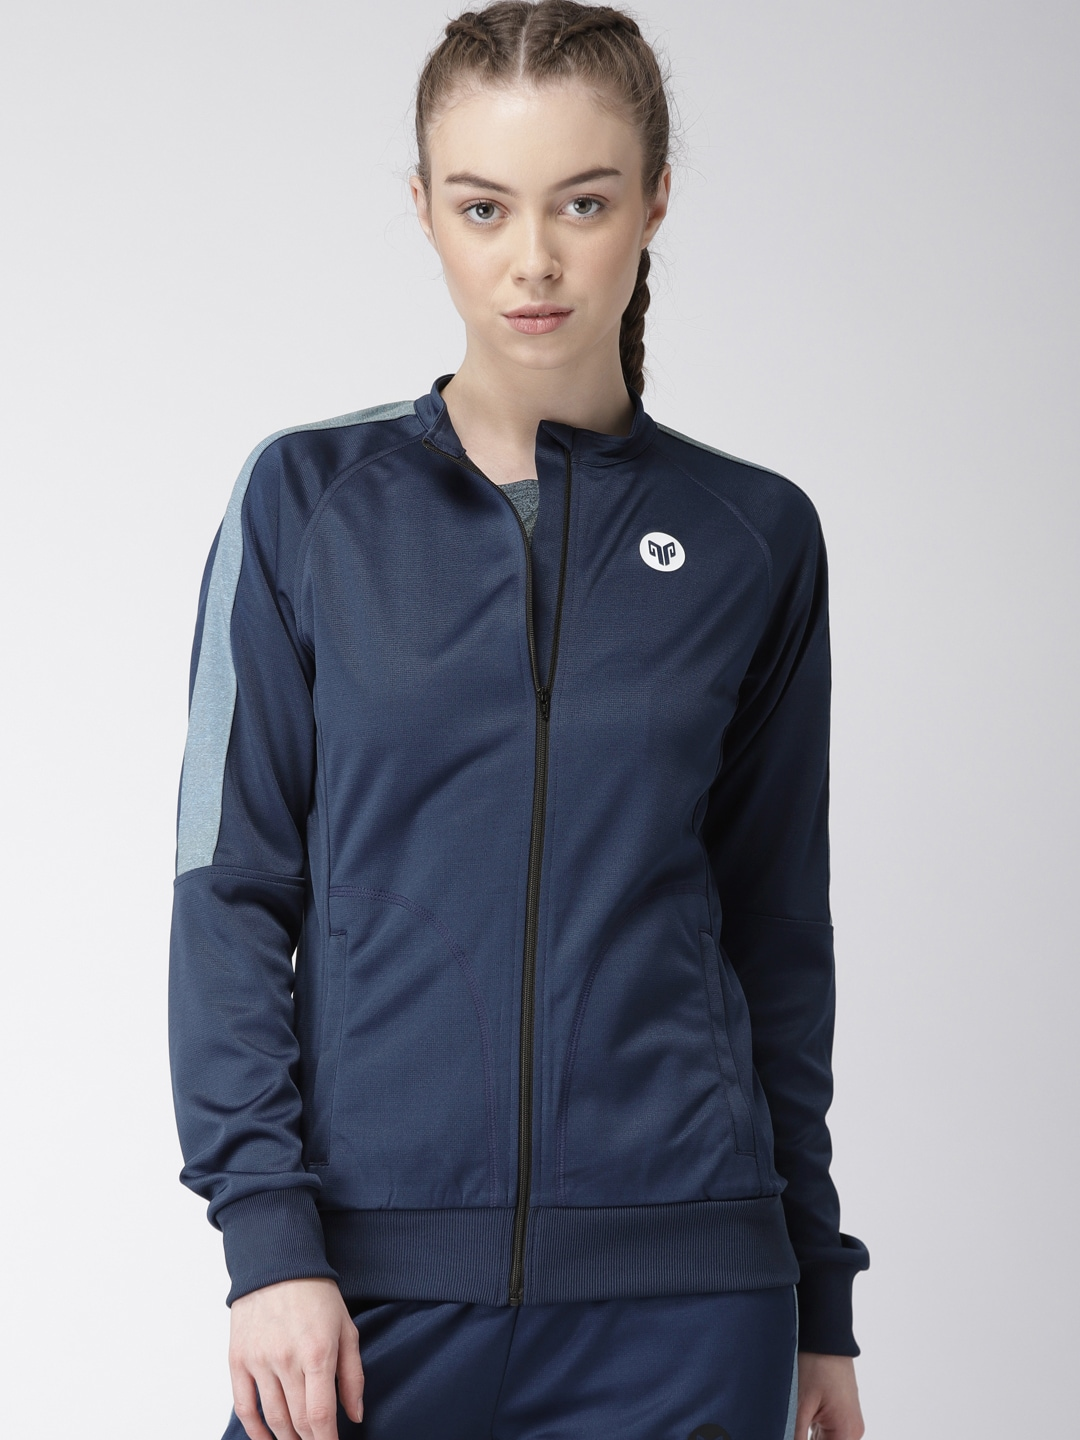 cdafcdfd952a0 Sports Jackets - Buy Sports Jackets online in India